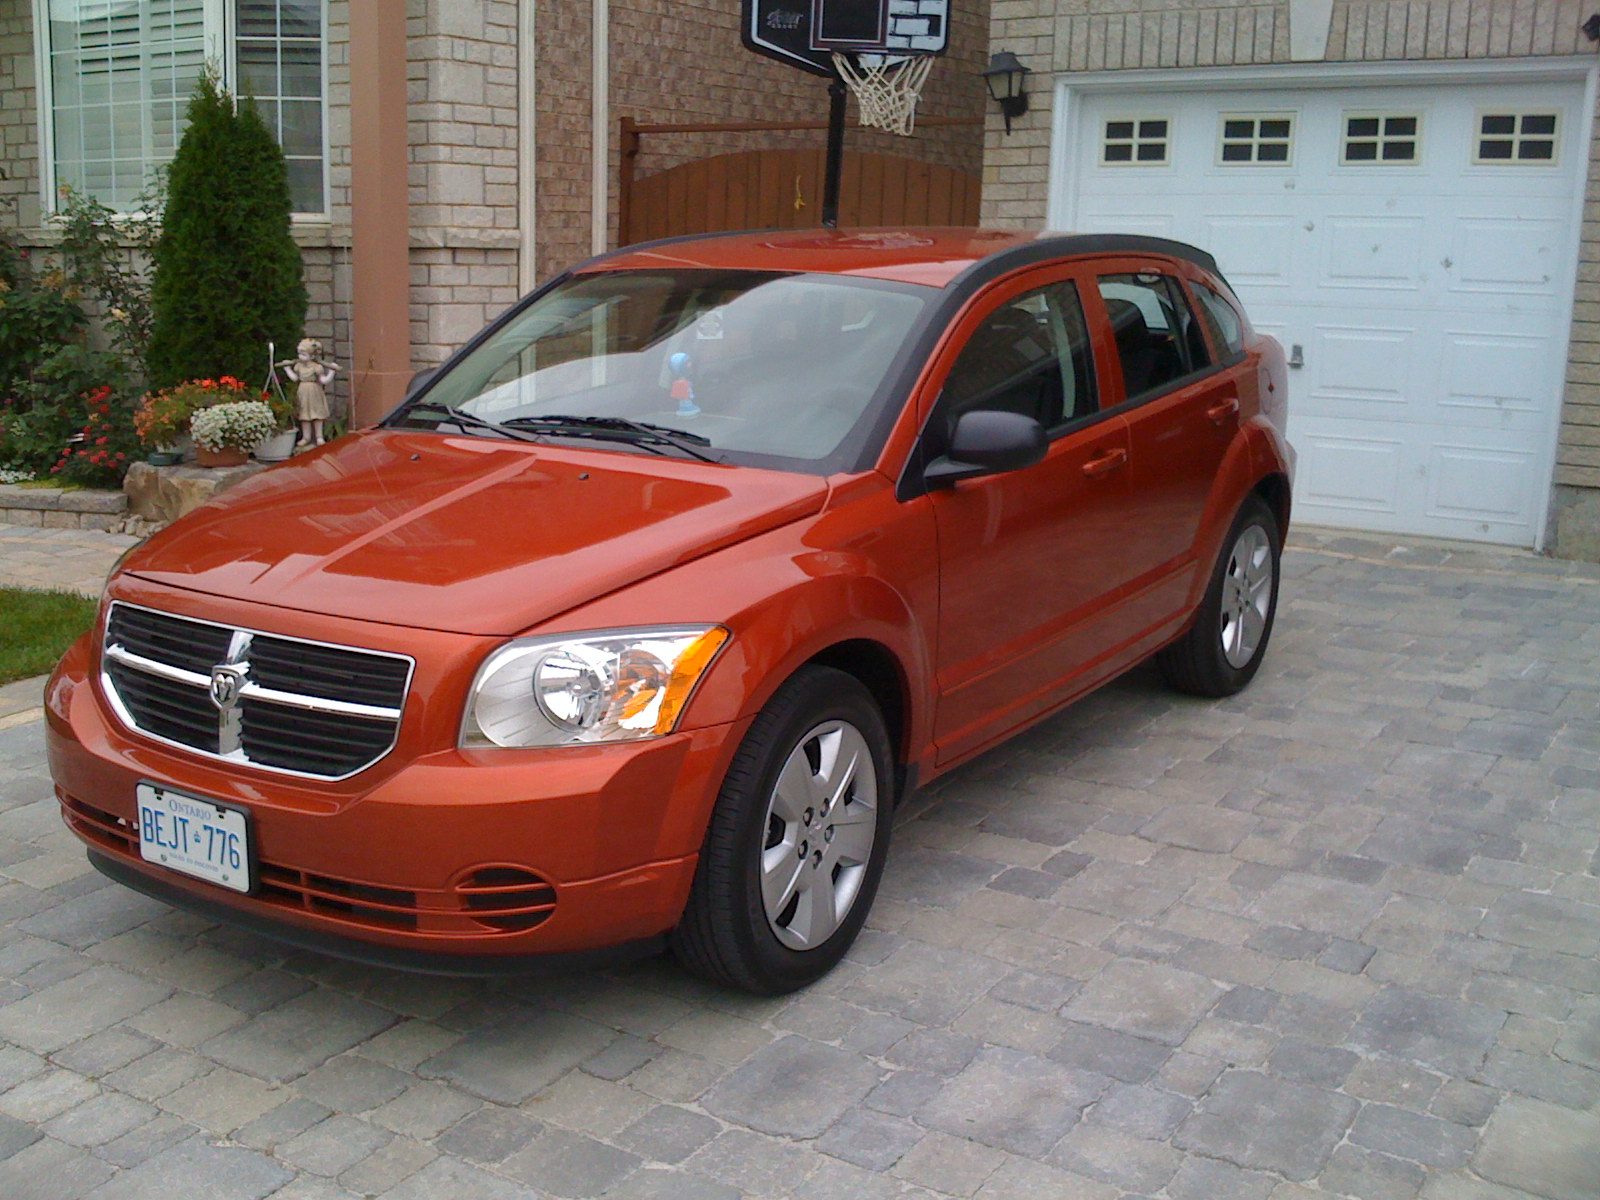 2009 Dodge Caliber SXT picture